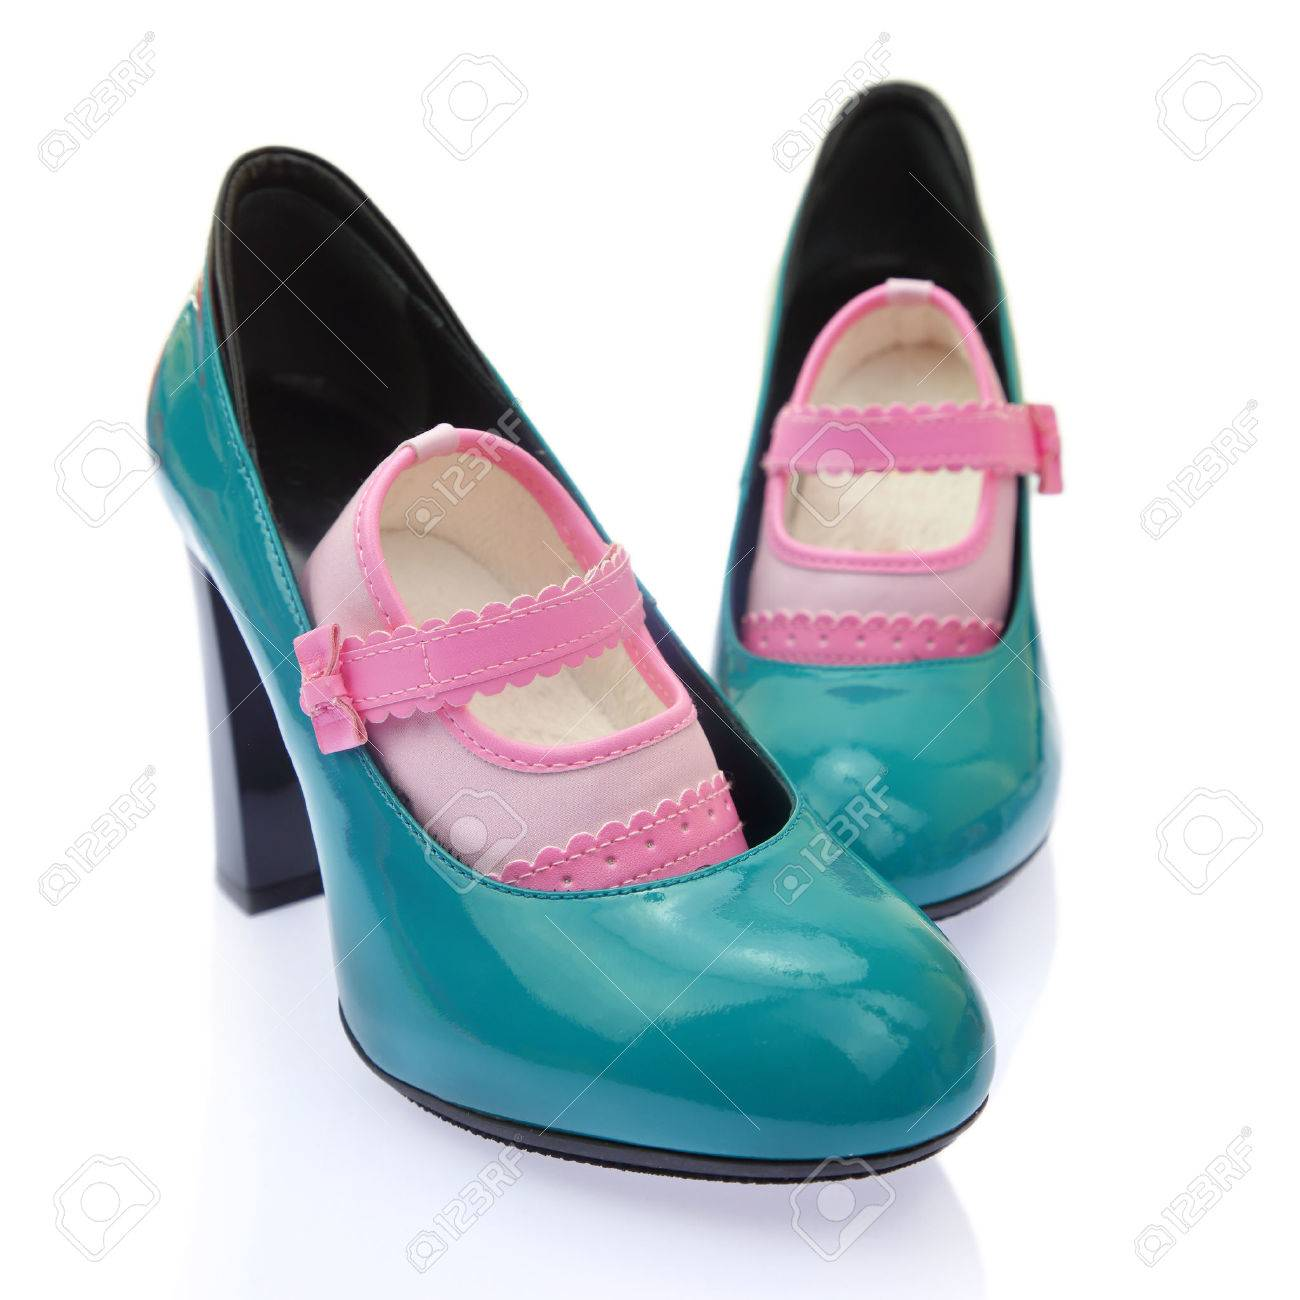 Baby shoes on mom's high heels Stock Photo - 35916469